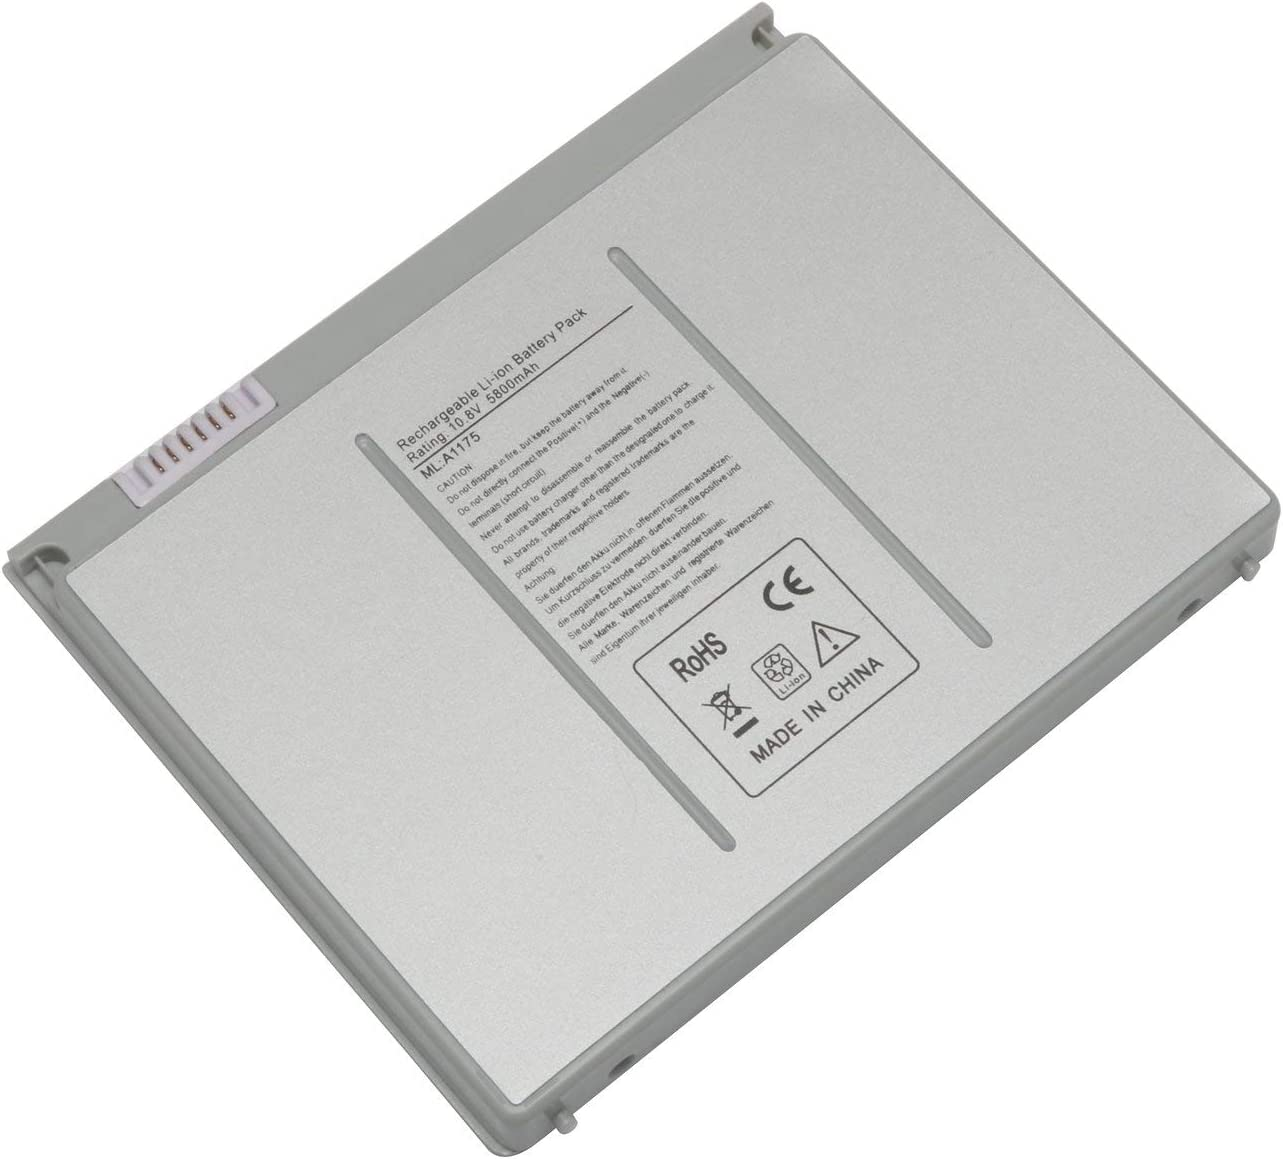 A1175 Laptop Battery for MacBook Pro 15